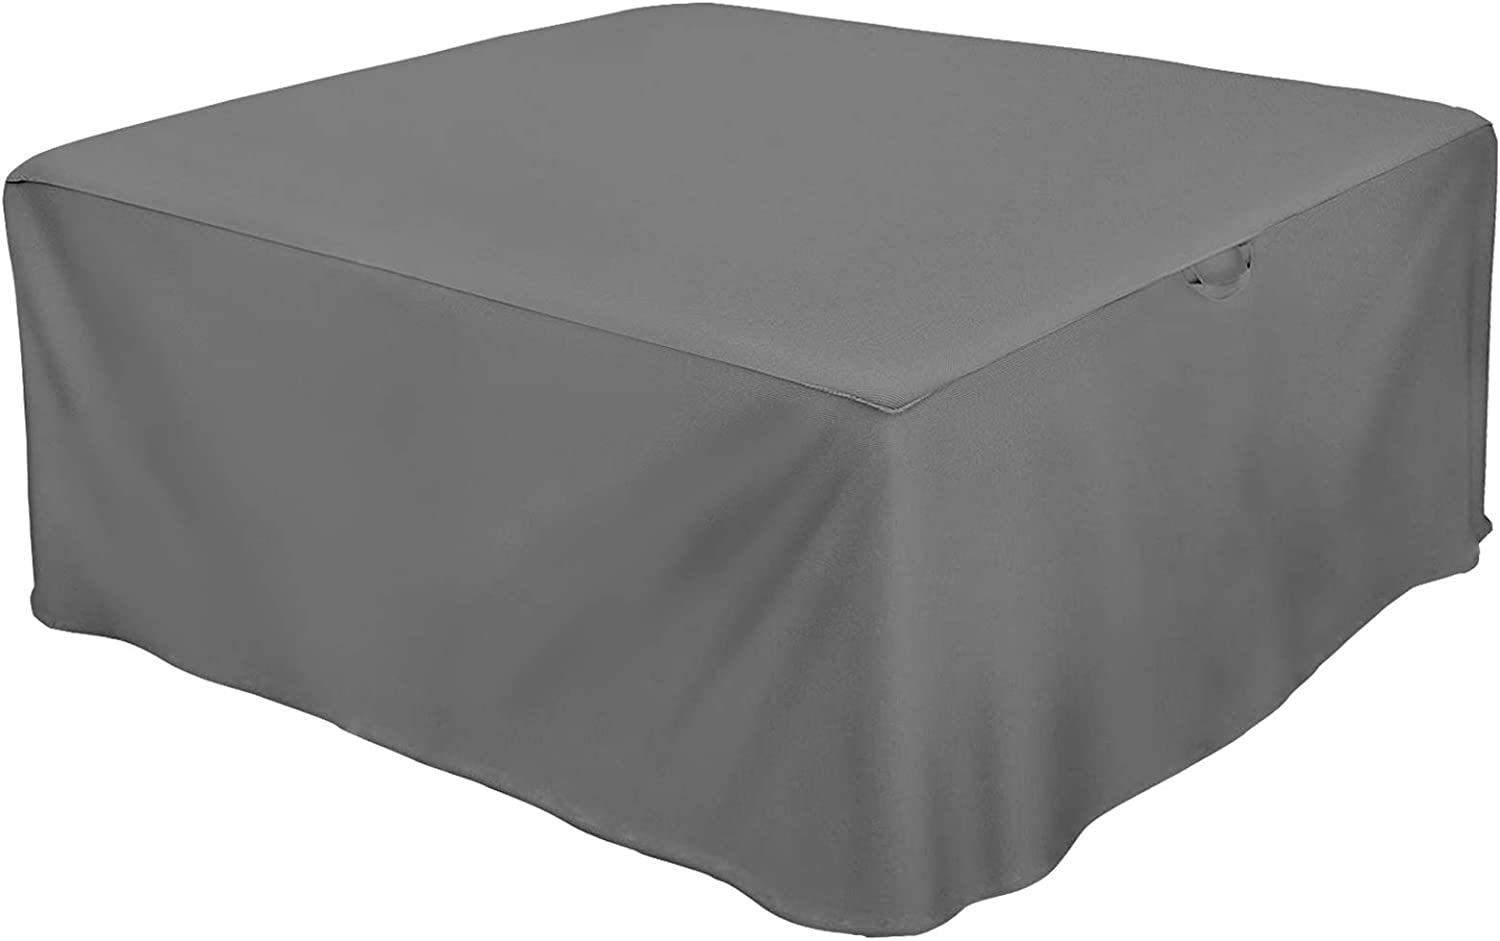 STARTWO Waterproof Outdoor Patio Furniture Cover, Resist to Dust UV Rain Snow, Sectional Furniture Covers Outdoor Table Chairs Set Cover Weather Protection 98x98x28 Inch